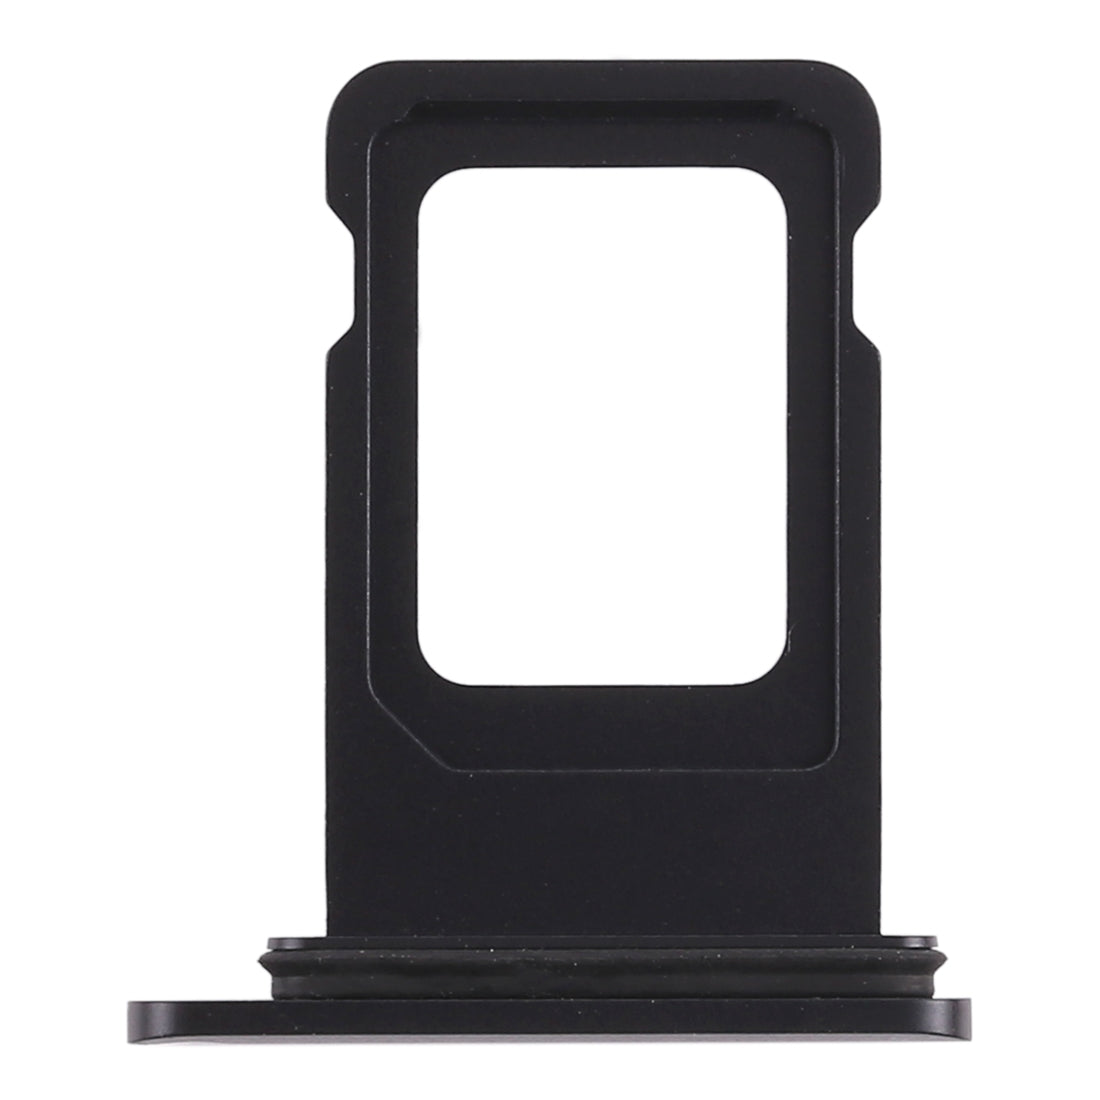 iPhone-XR-Sim-Card-Tray-Black.jpg